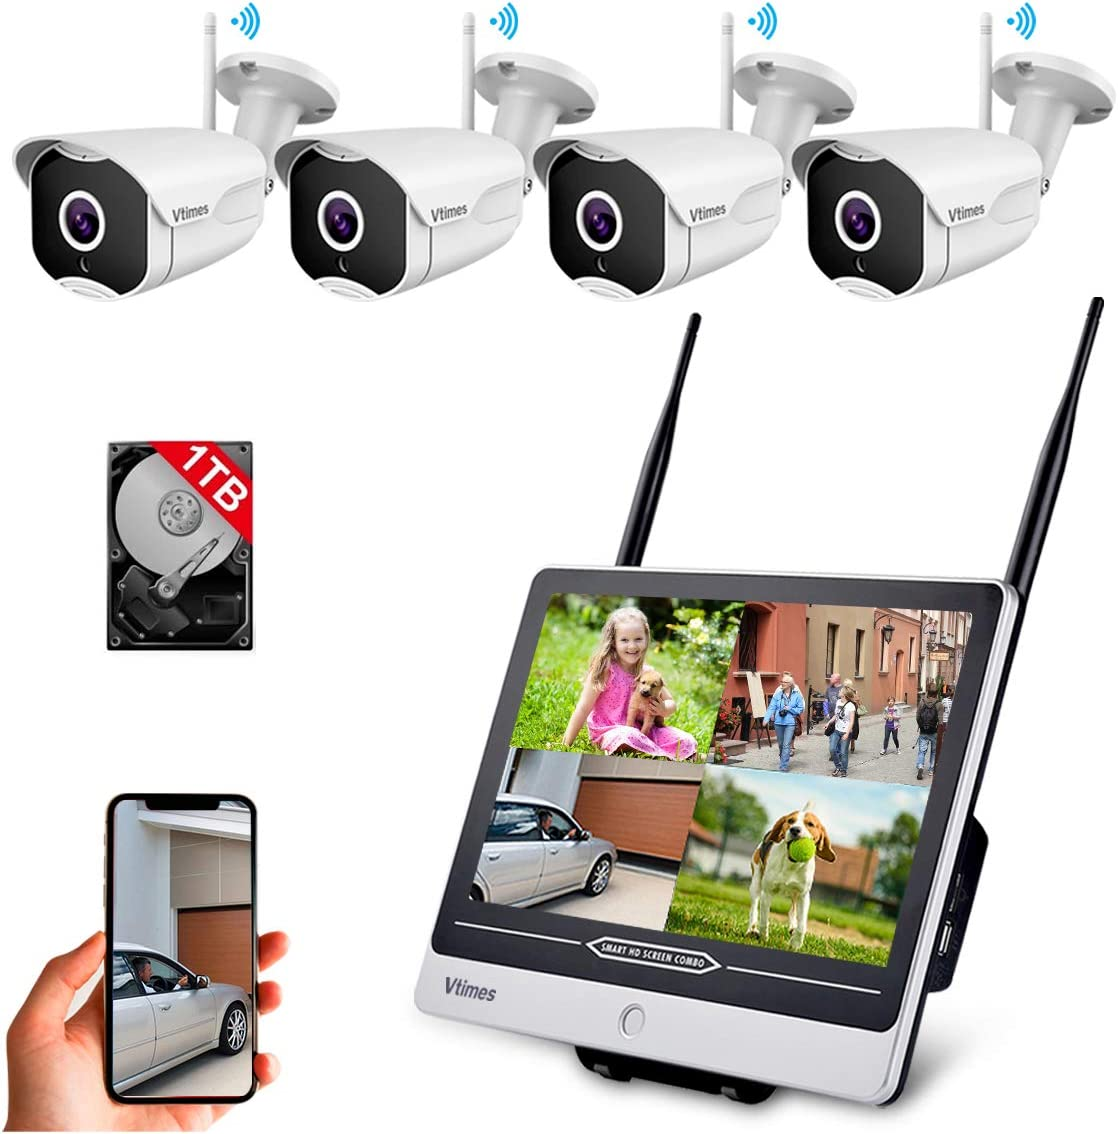 Vtimes NVR 1080P Wireless Security Camera System with 11.6 Inch LCD Monitor, All in One 4 Outdoor/Home Cameras with Night Vision, IP66 Weatherproof, Motion Detection, Remote View, 1TB Hard Drive